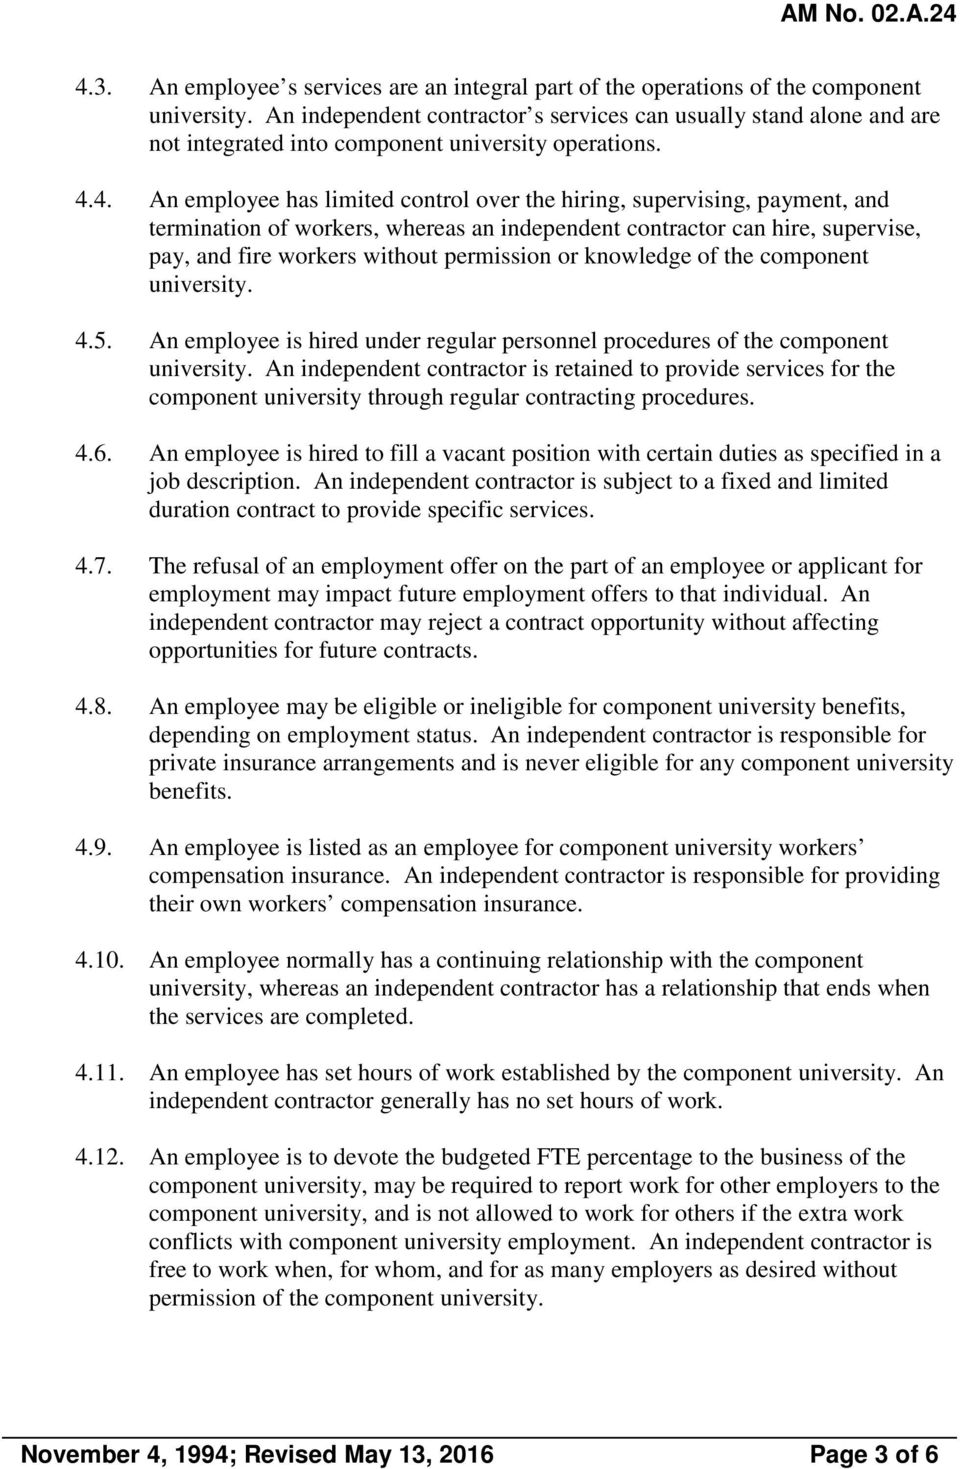 4. An employee has limited control over the hiring, supervising, payment, and termination of workers, whereas an independent contractor can hire, supervise, pay, and fire workers without permission